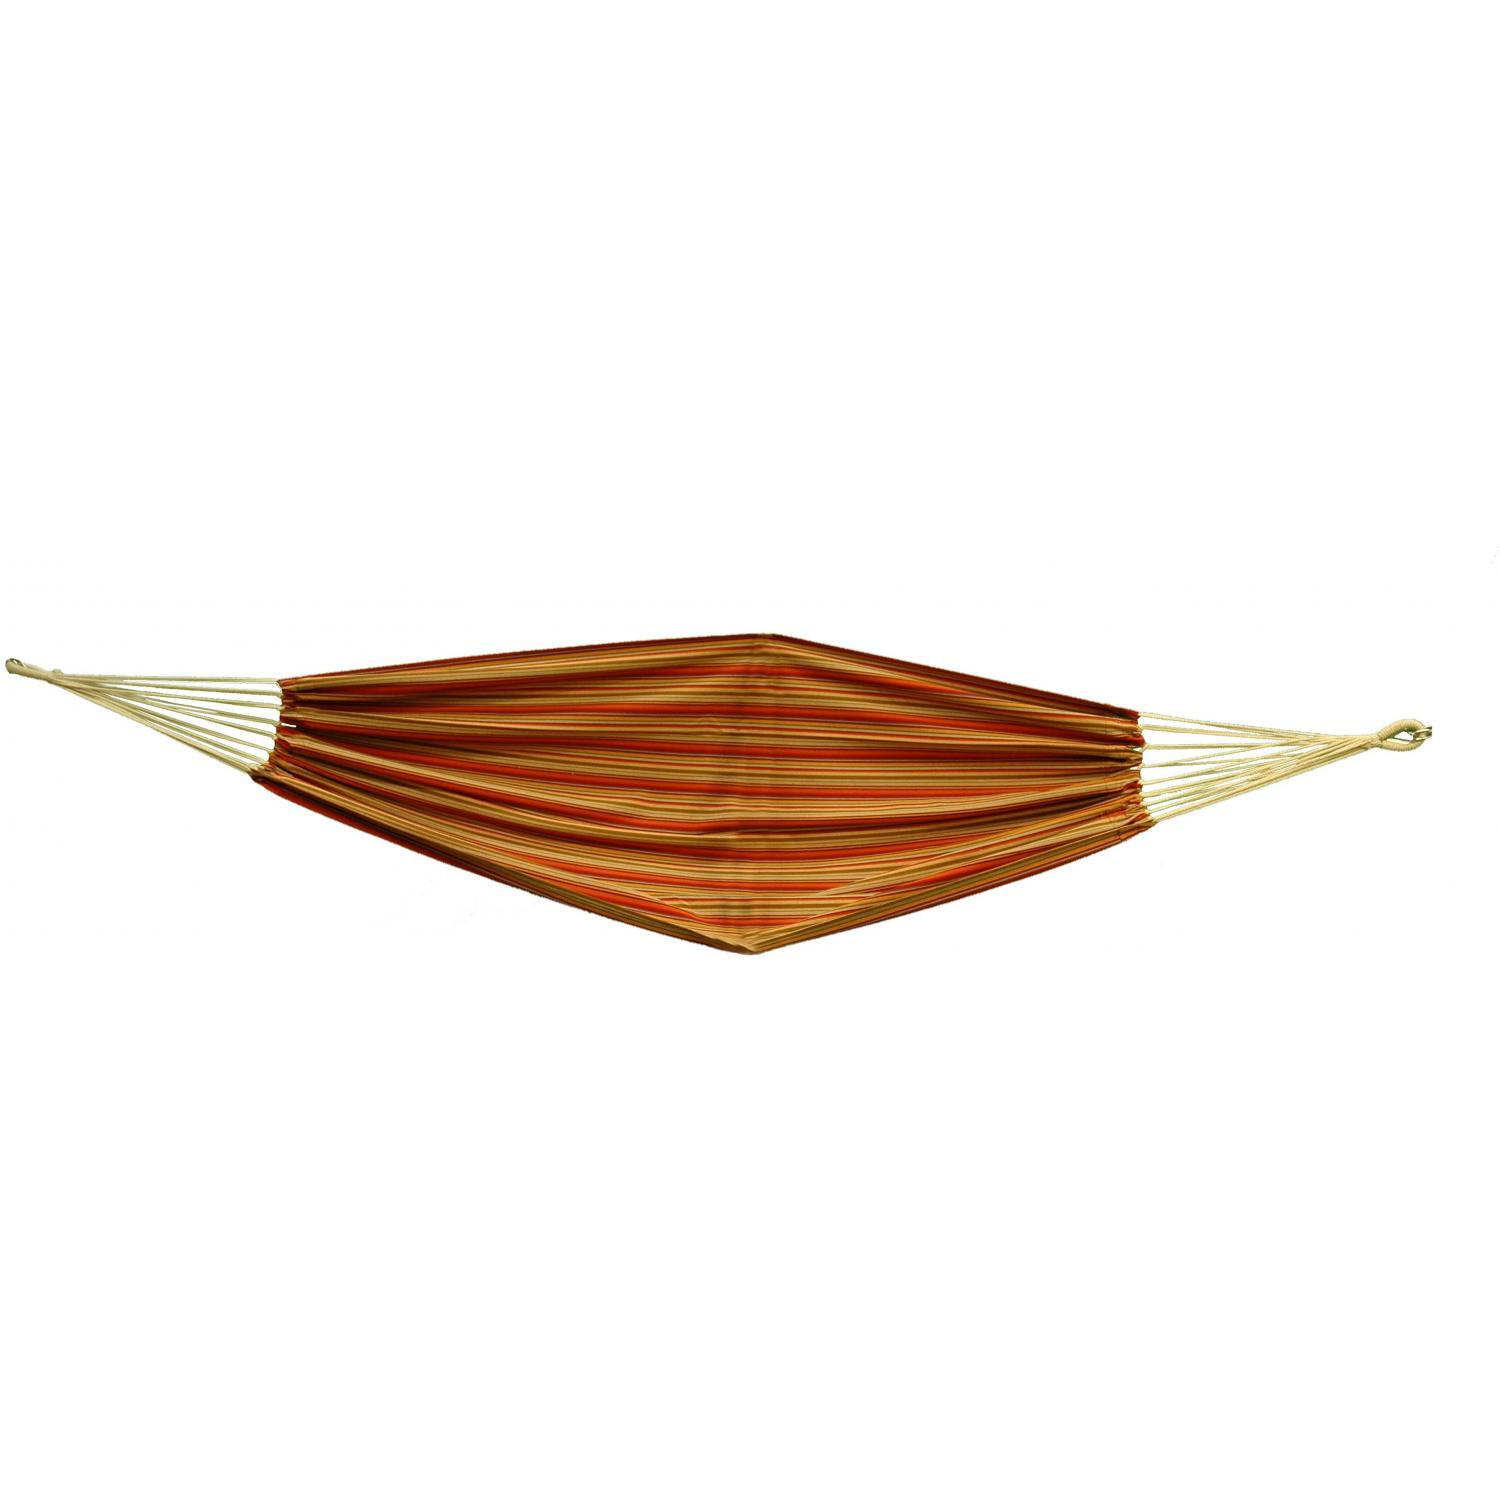 Bliss Hammocks Oversized Brazilian Hammock In A Bag - Toasted Almond